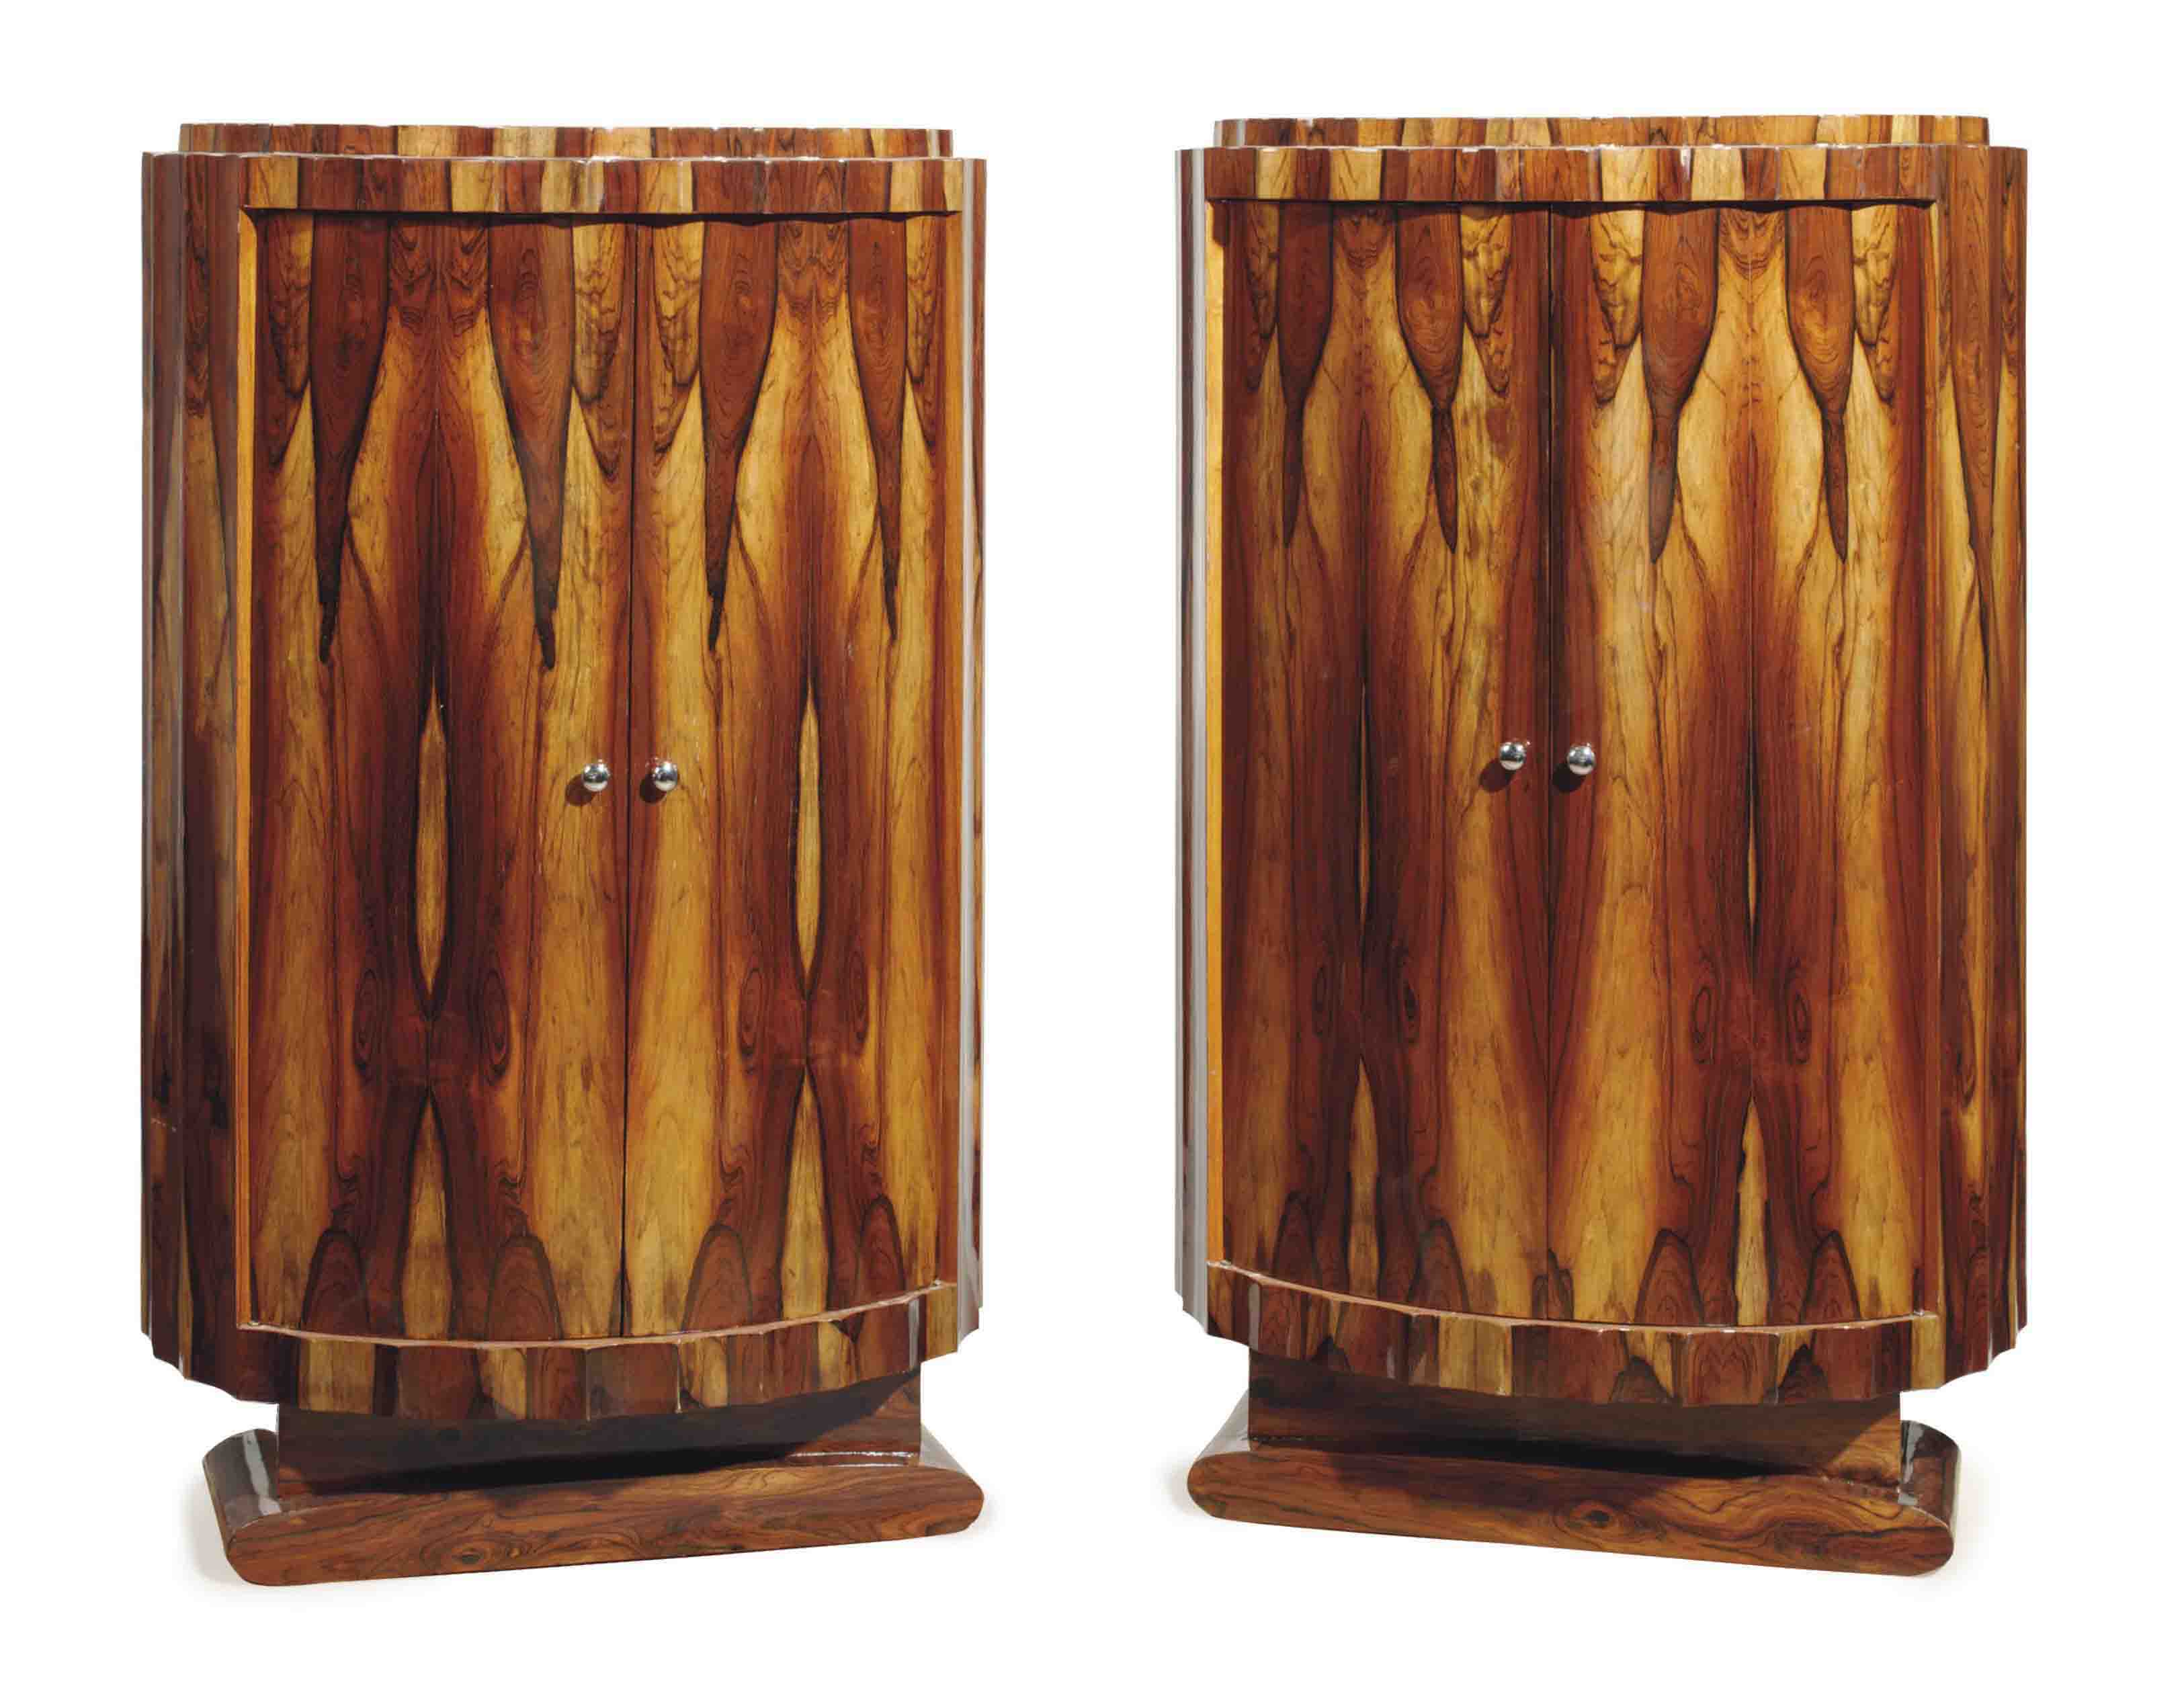 A PAIR OF ART DECO STYLE FLAME-VENEERED CABINETS,